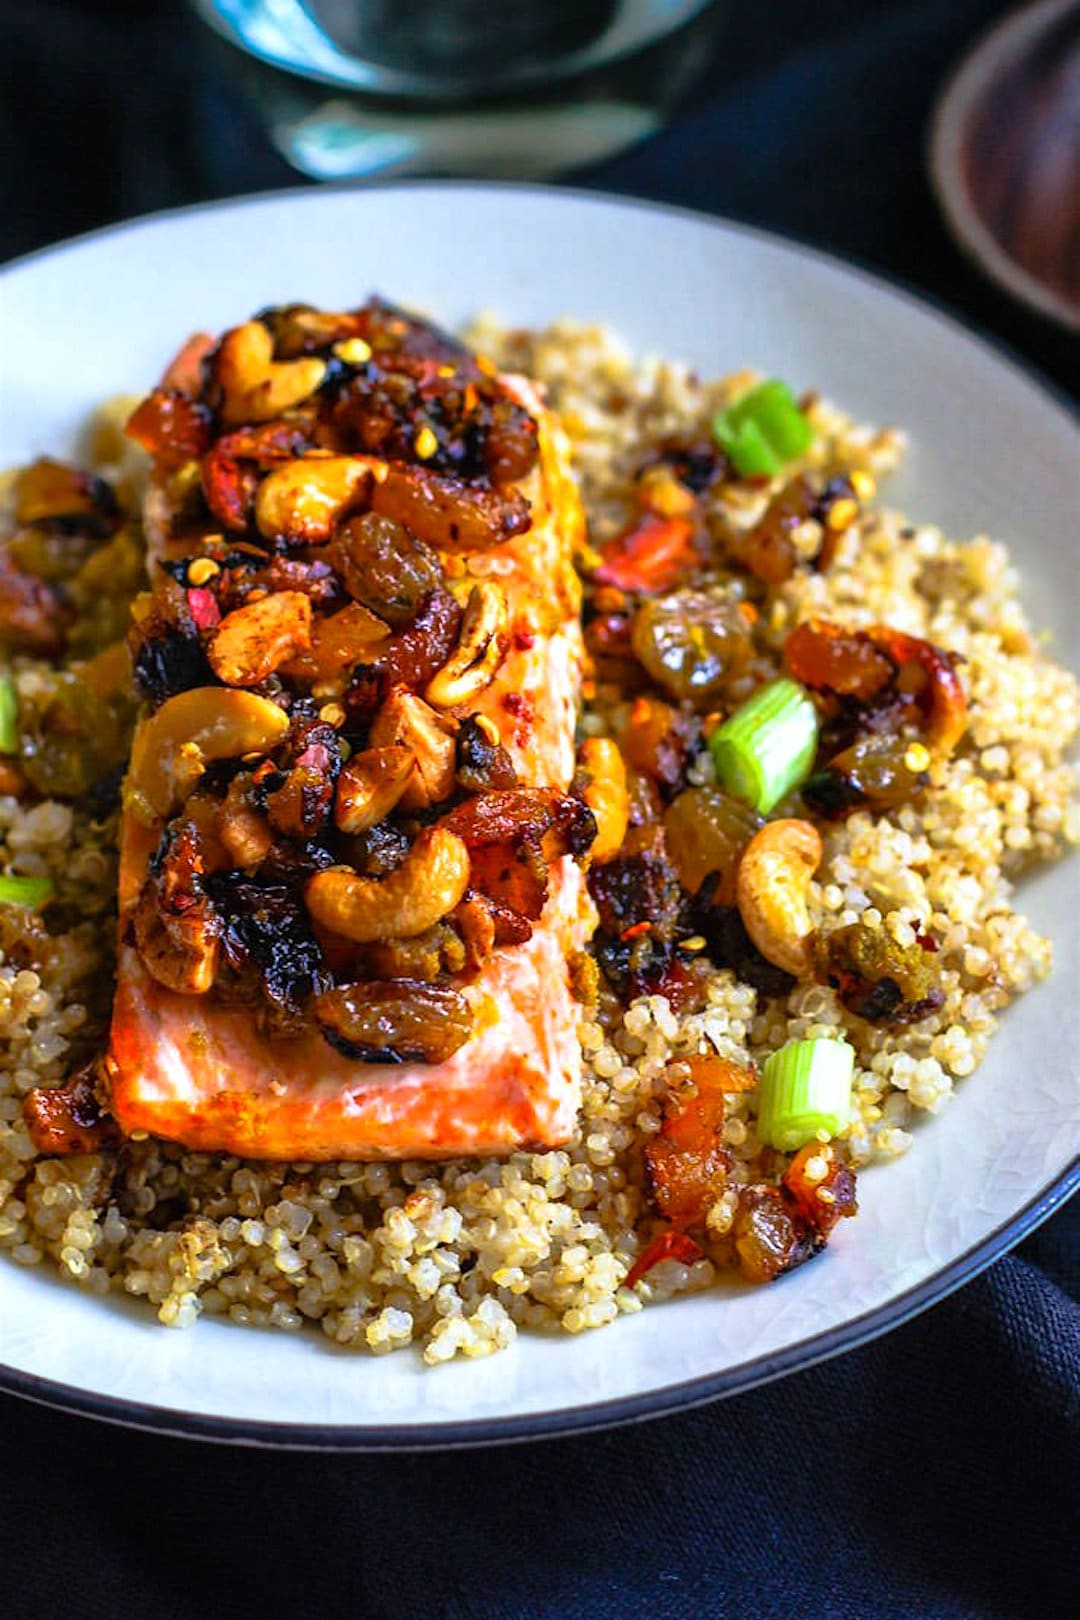 Green Curry Salmon and Cashew with Quinoa! Sweet and spicy green curry combined with cashews, salmon, and dried fruit! A healthy flavorful meal that is packed with anti-oxidants and comes together in 30 minutes! Great by itself or served on top of garlic quinoa.